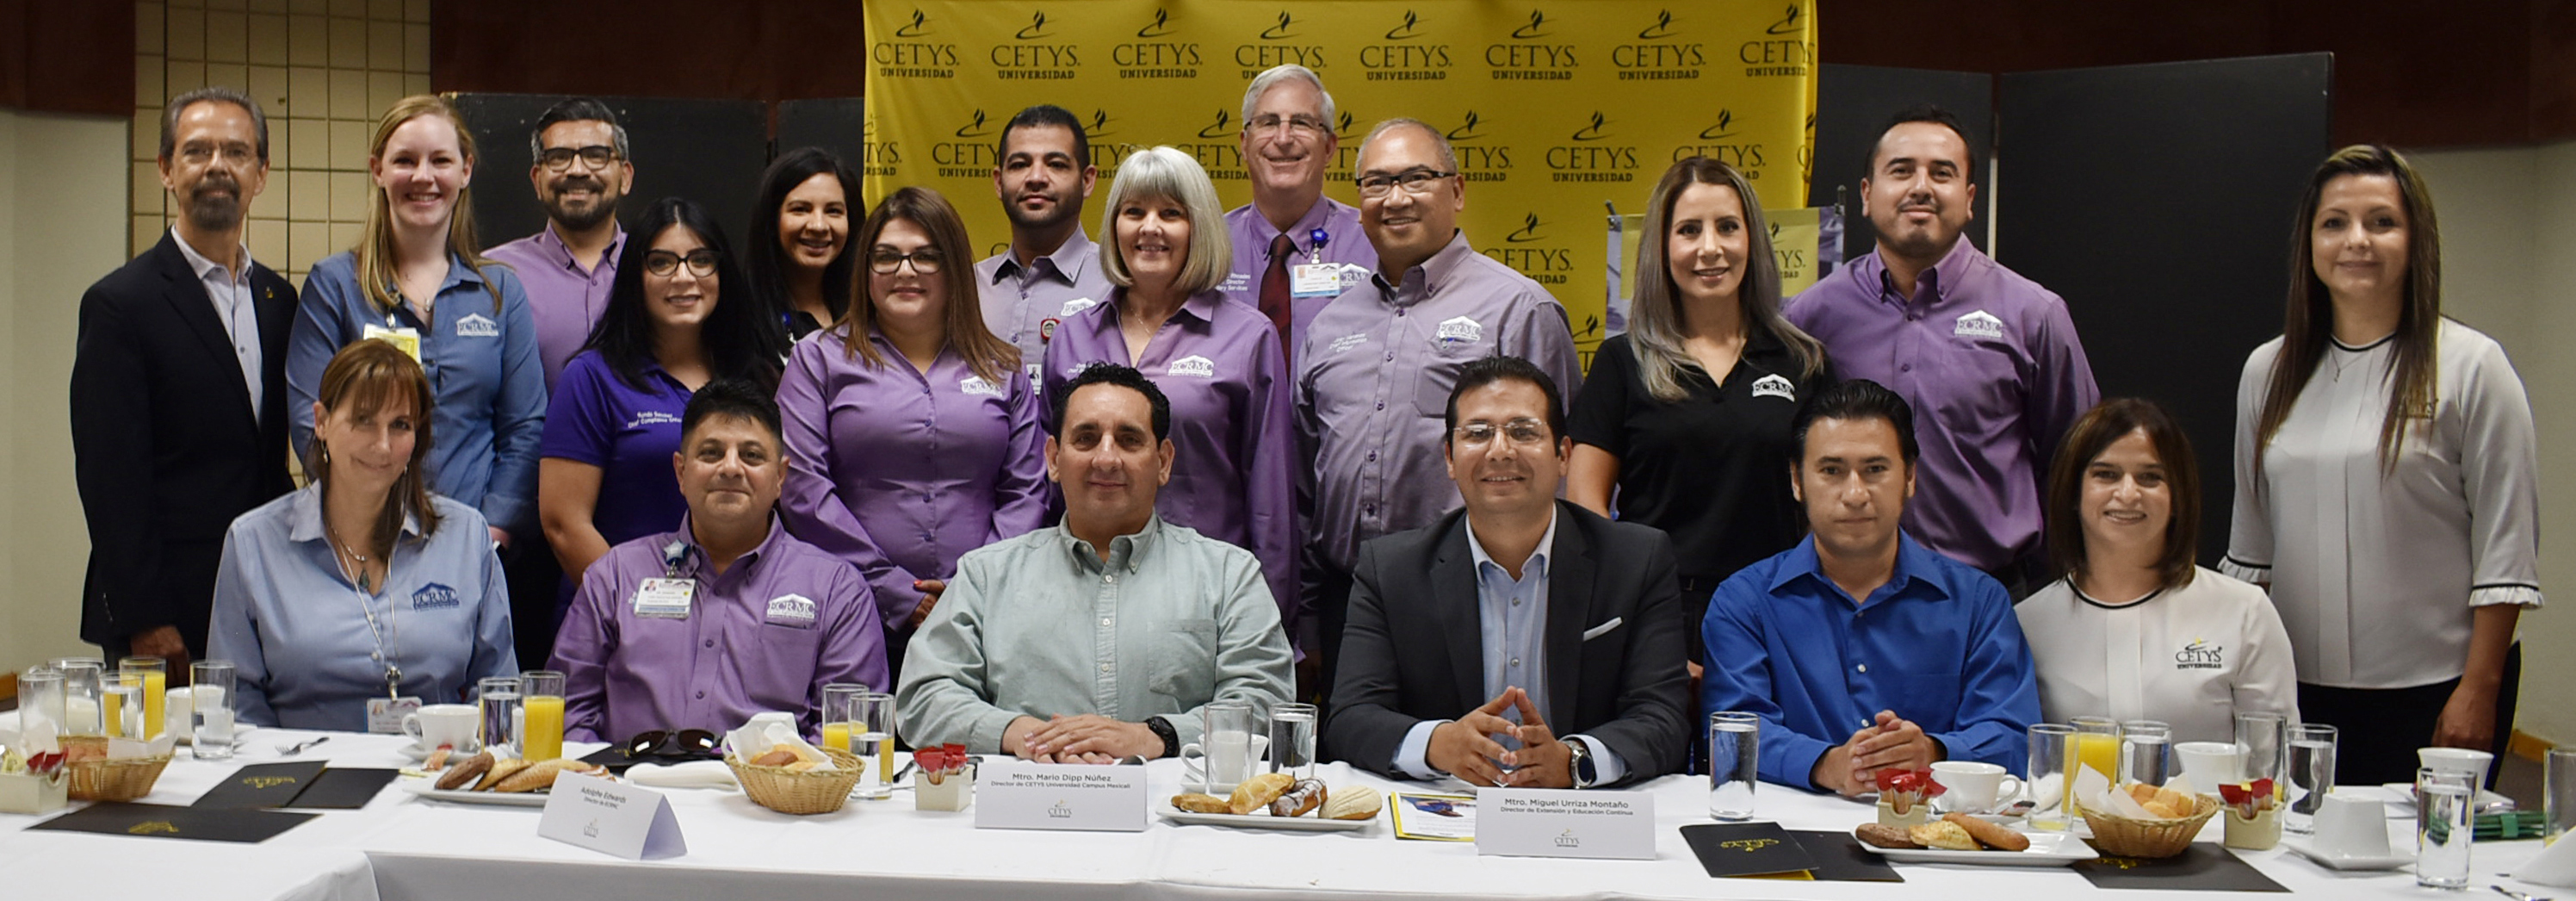 CETYS Universidad y El Centro Regional Medical Center crean capacitación para enfermeros